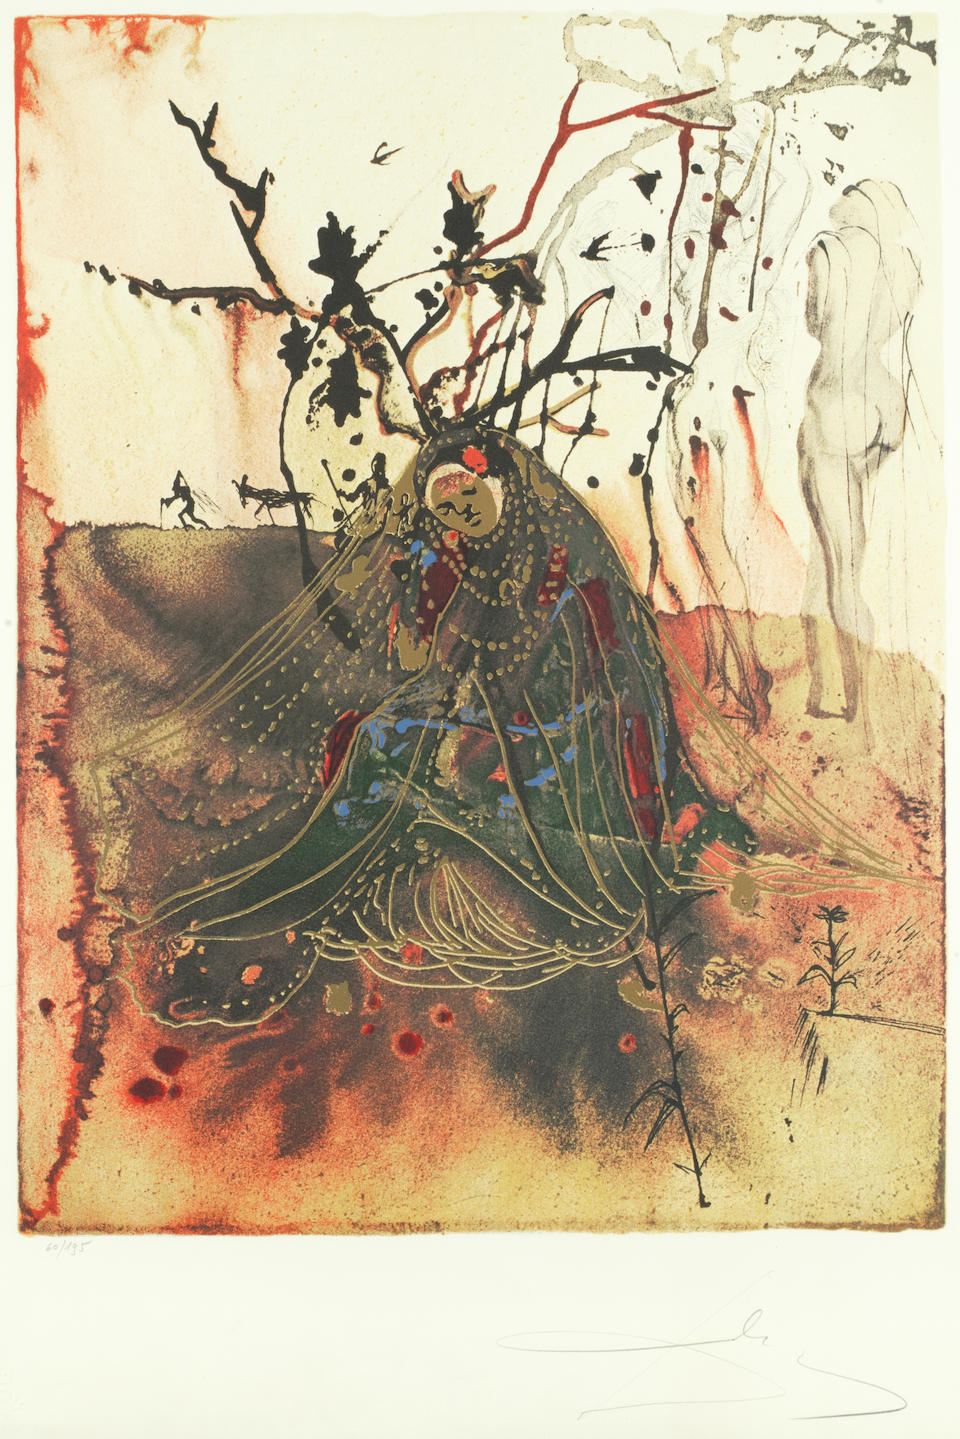 Salvador Dali (Spanish, 1904-1989) The Four Seasons  The complete set of four lithographs in colours, 1972, on Arches, each signed in pencil, each variously numbered from the 195, published by Les Heures Claires, Paris, with their blindstamp, 400 x 500mm (15 3/4 x 19 5/8in)(I)(or the reverse)(4)